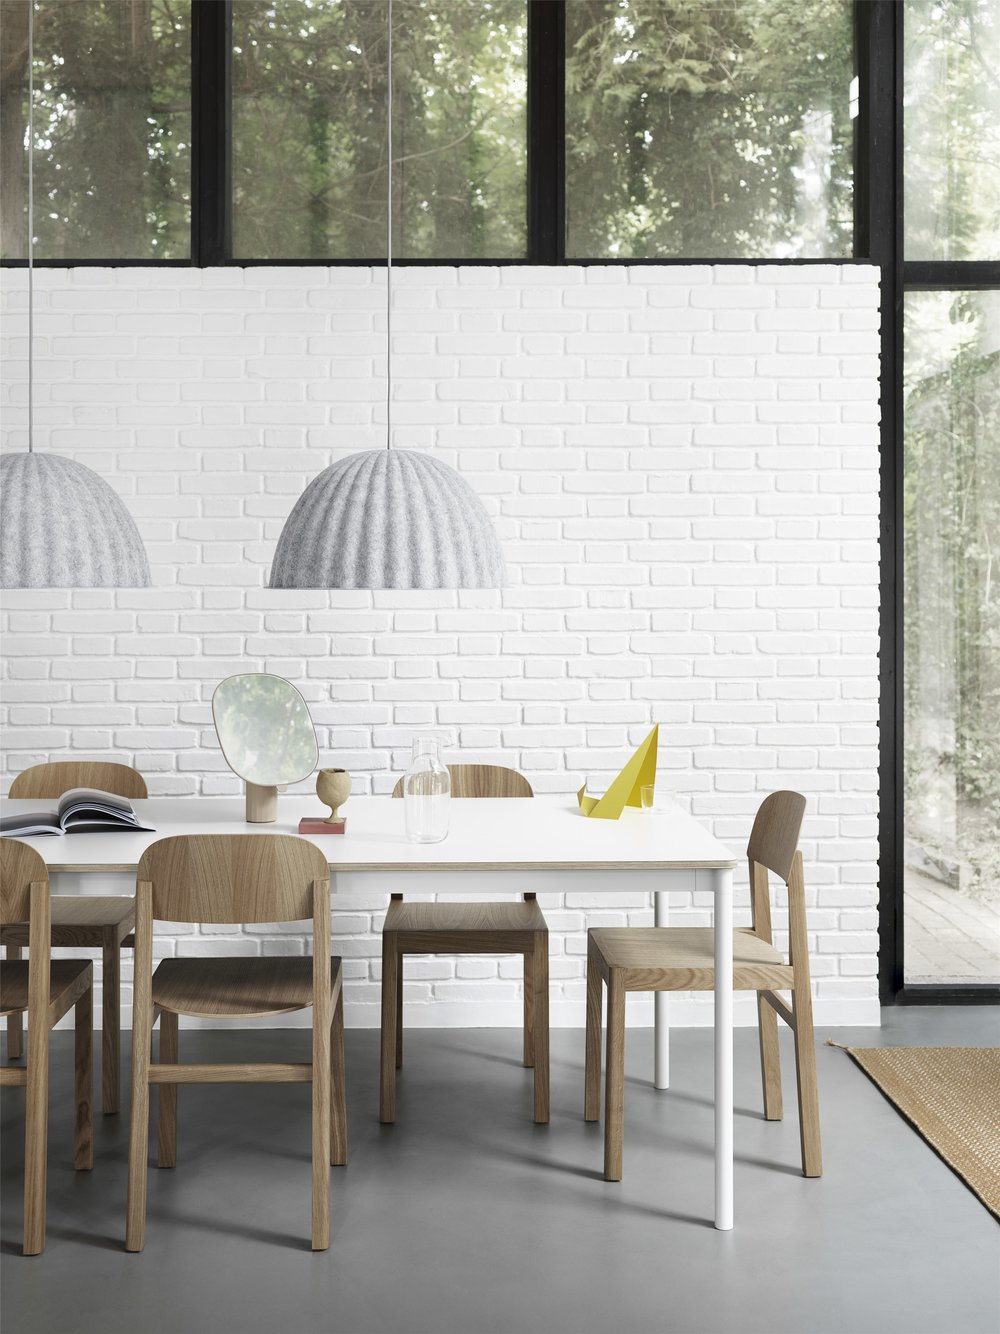 - With its raw and distinct surface texture, the lampshade adds a modern sentiment to its surroundings while absorbing the sound underneath with its distinct form.